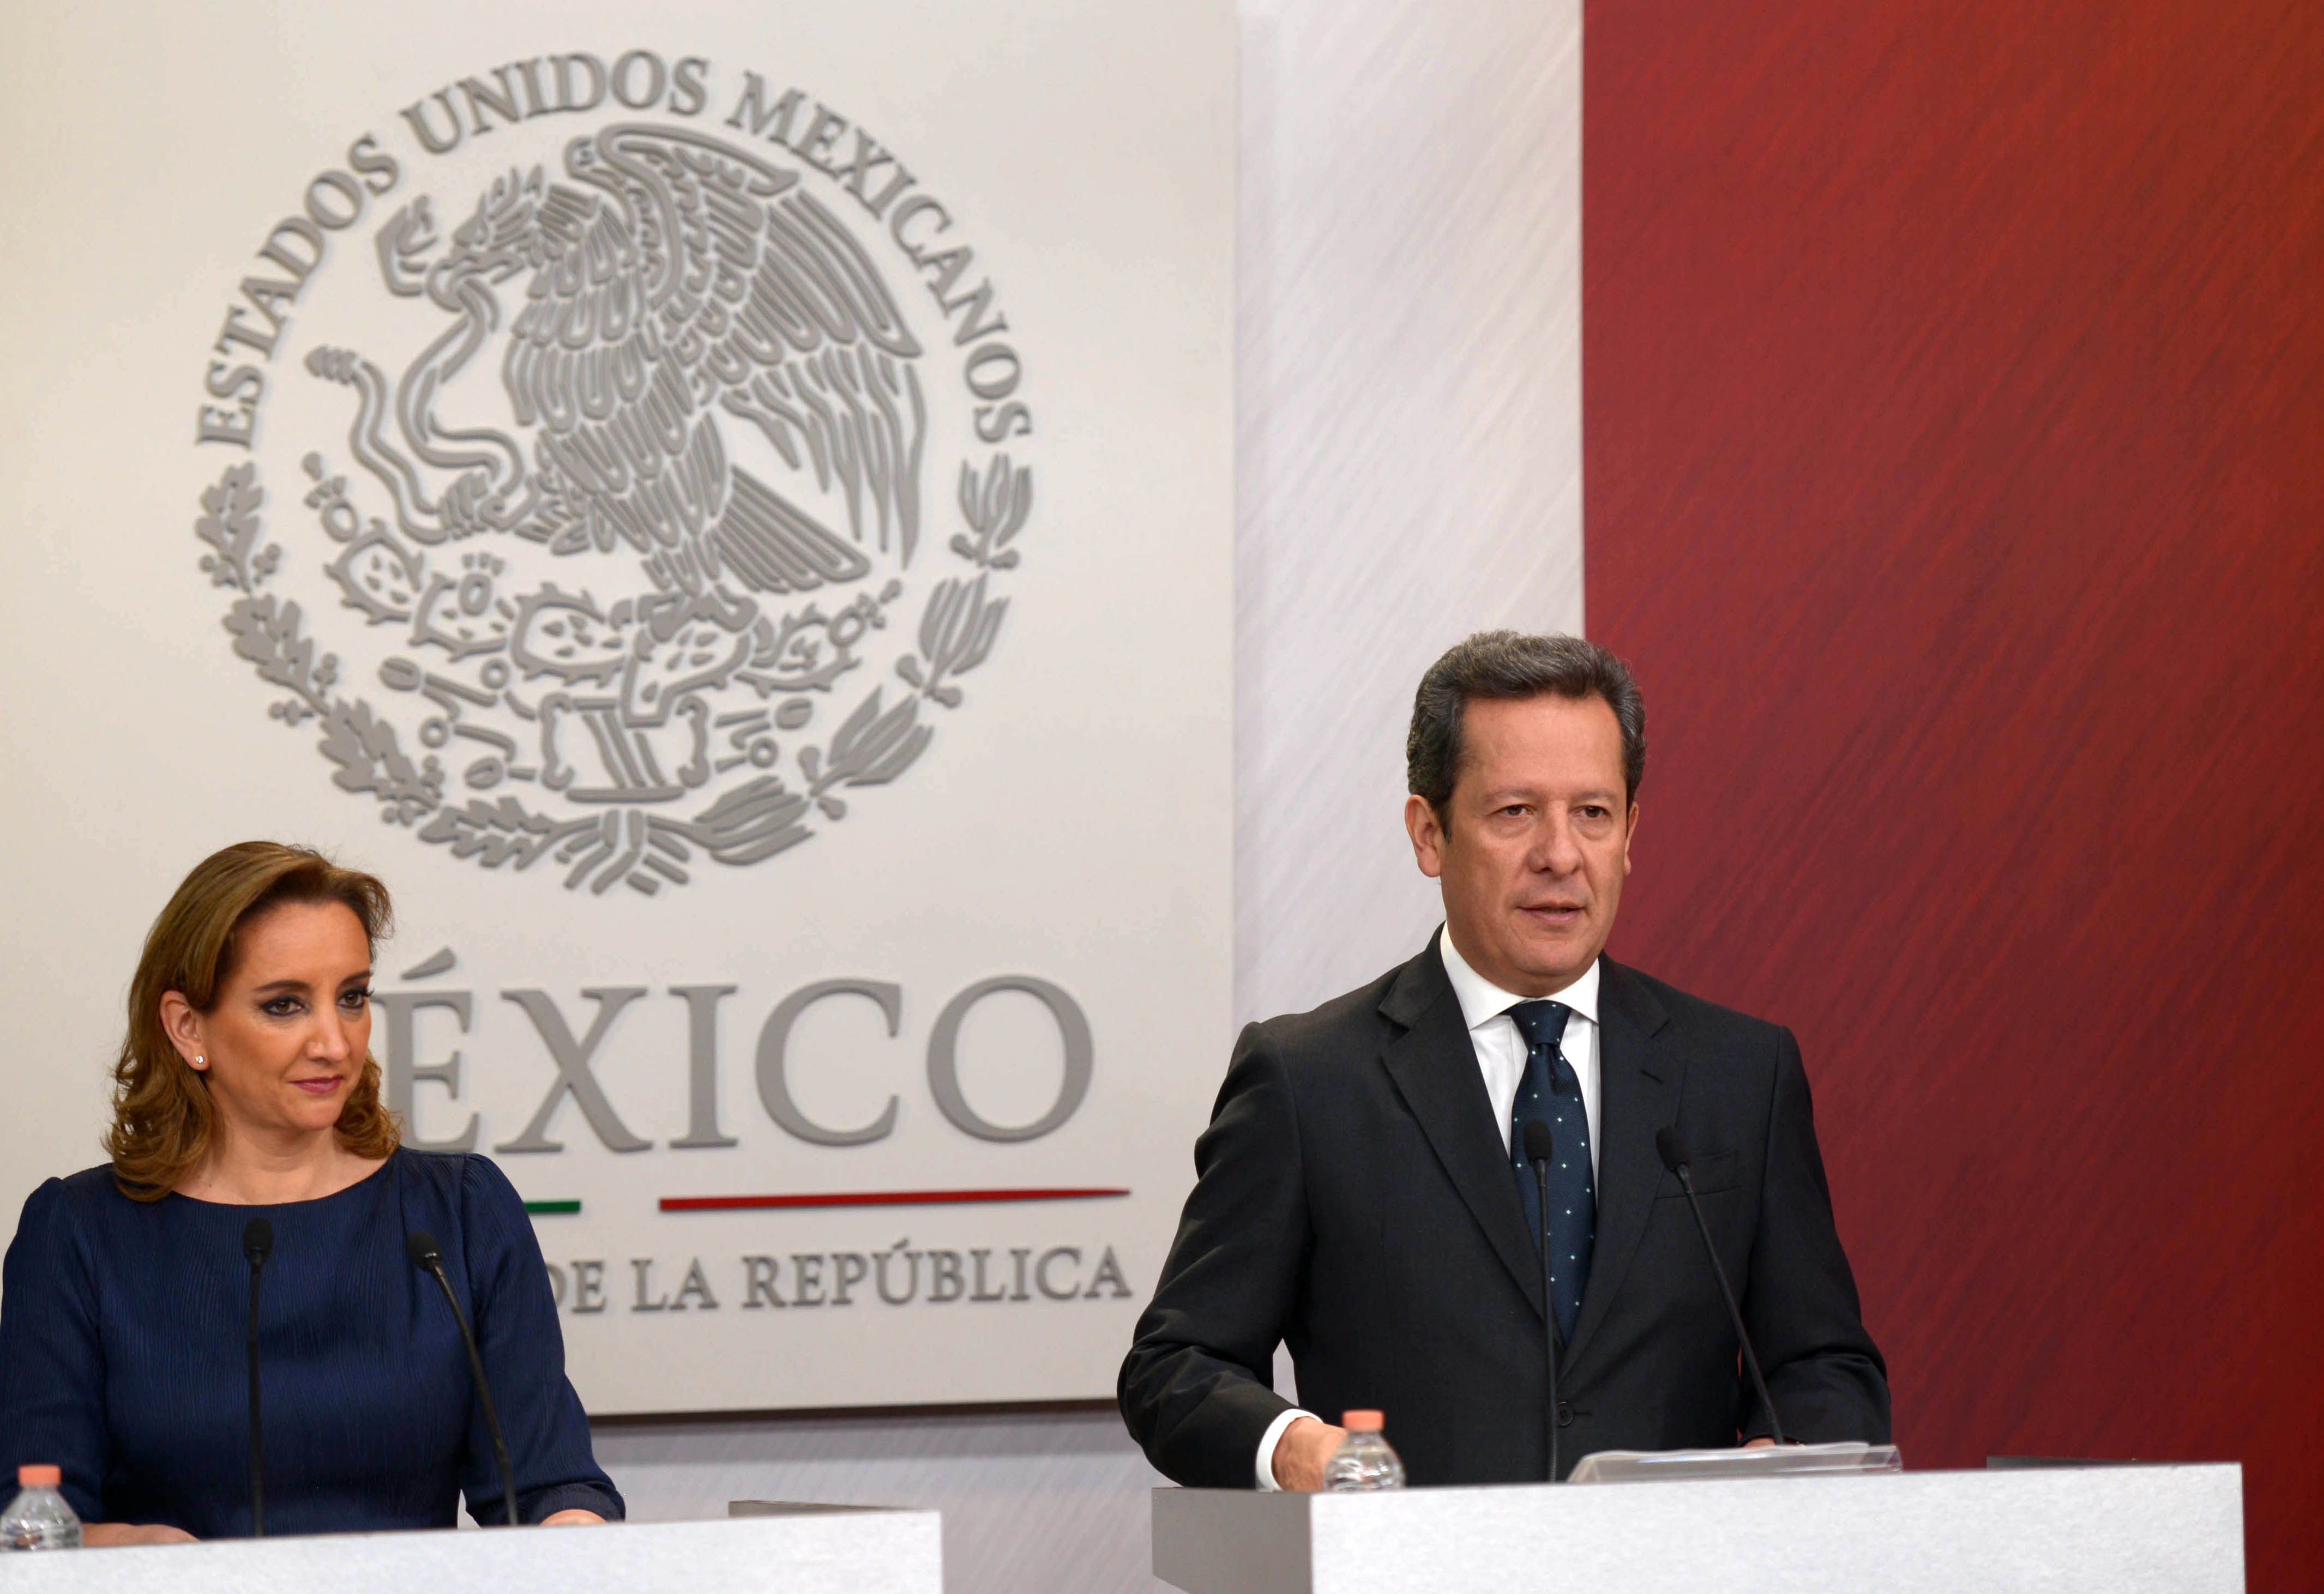 This translates into more development opportunities for Mexicans, he said.